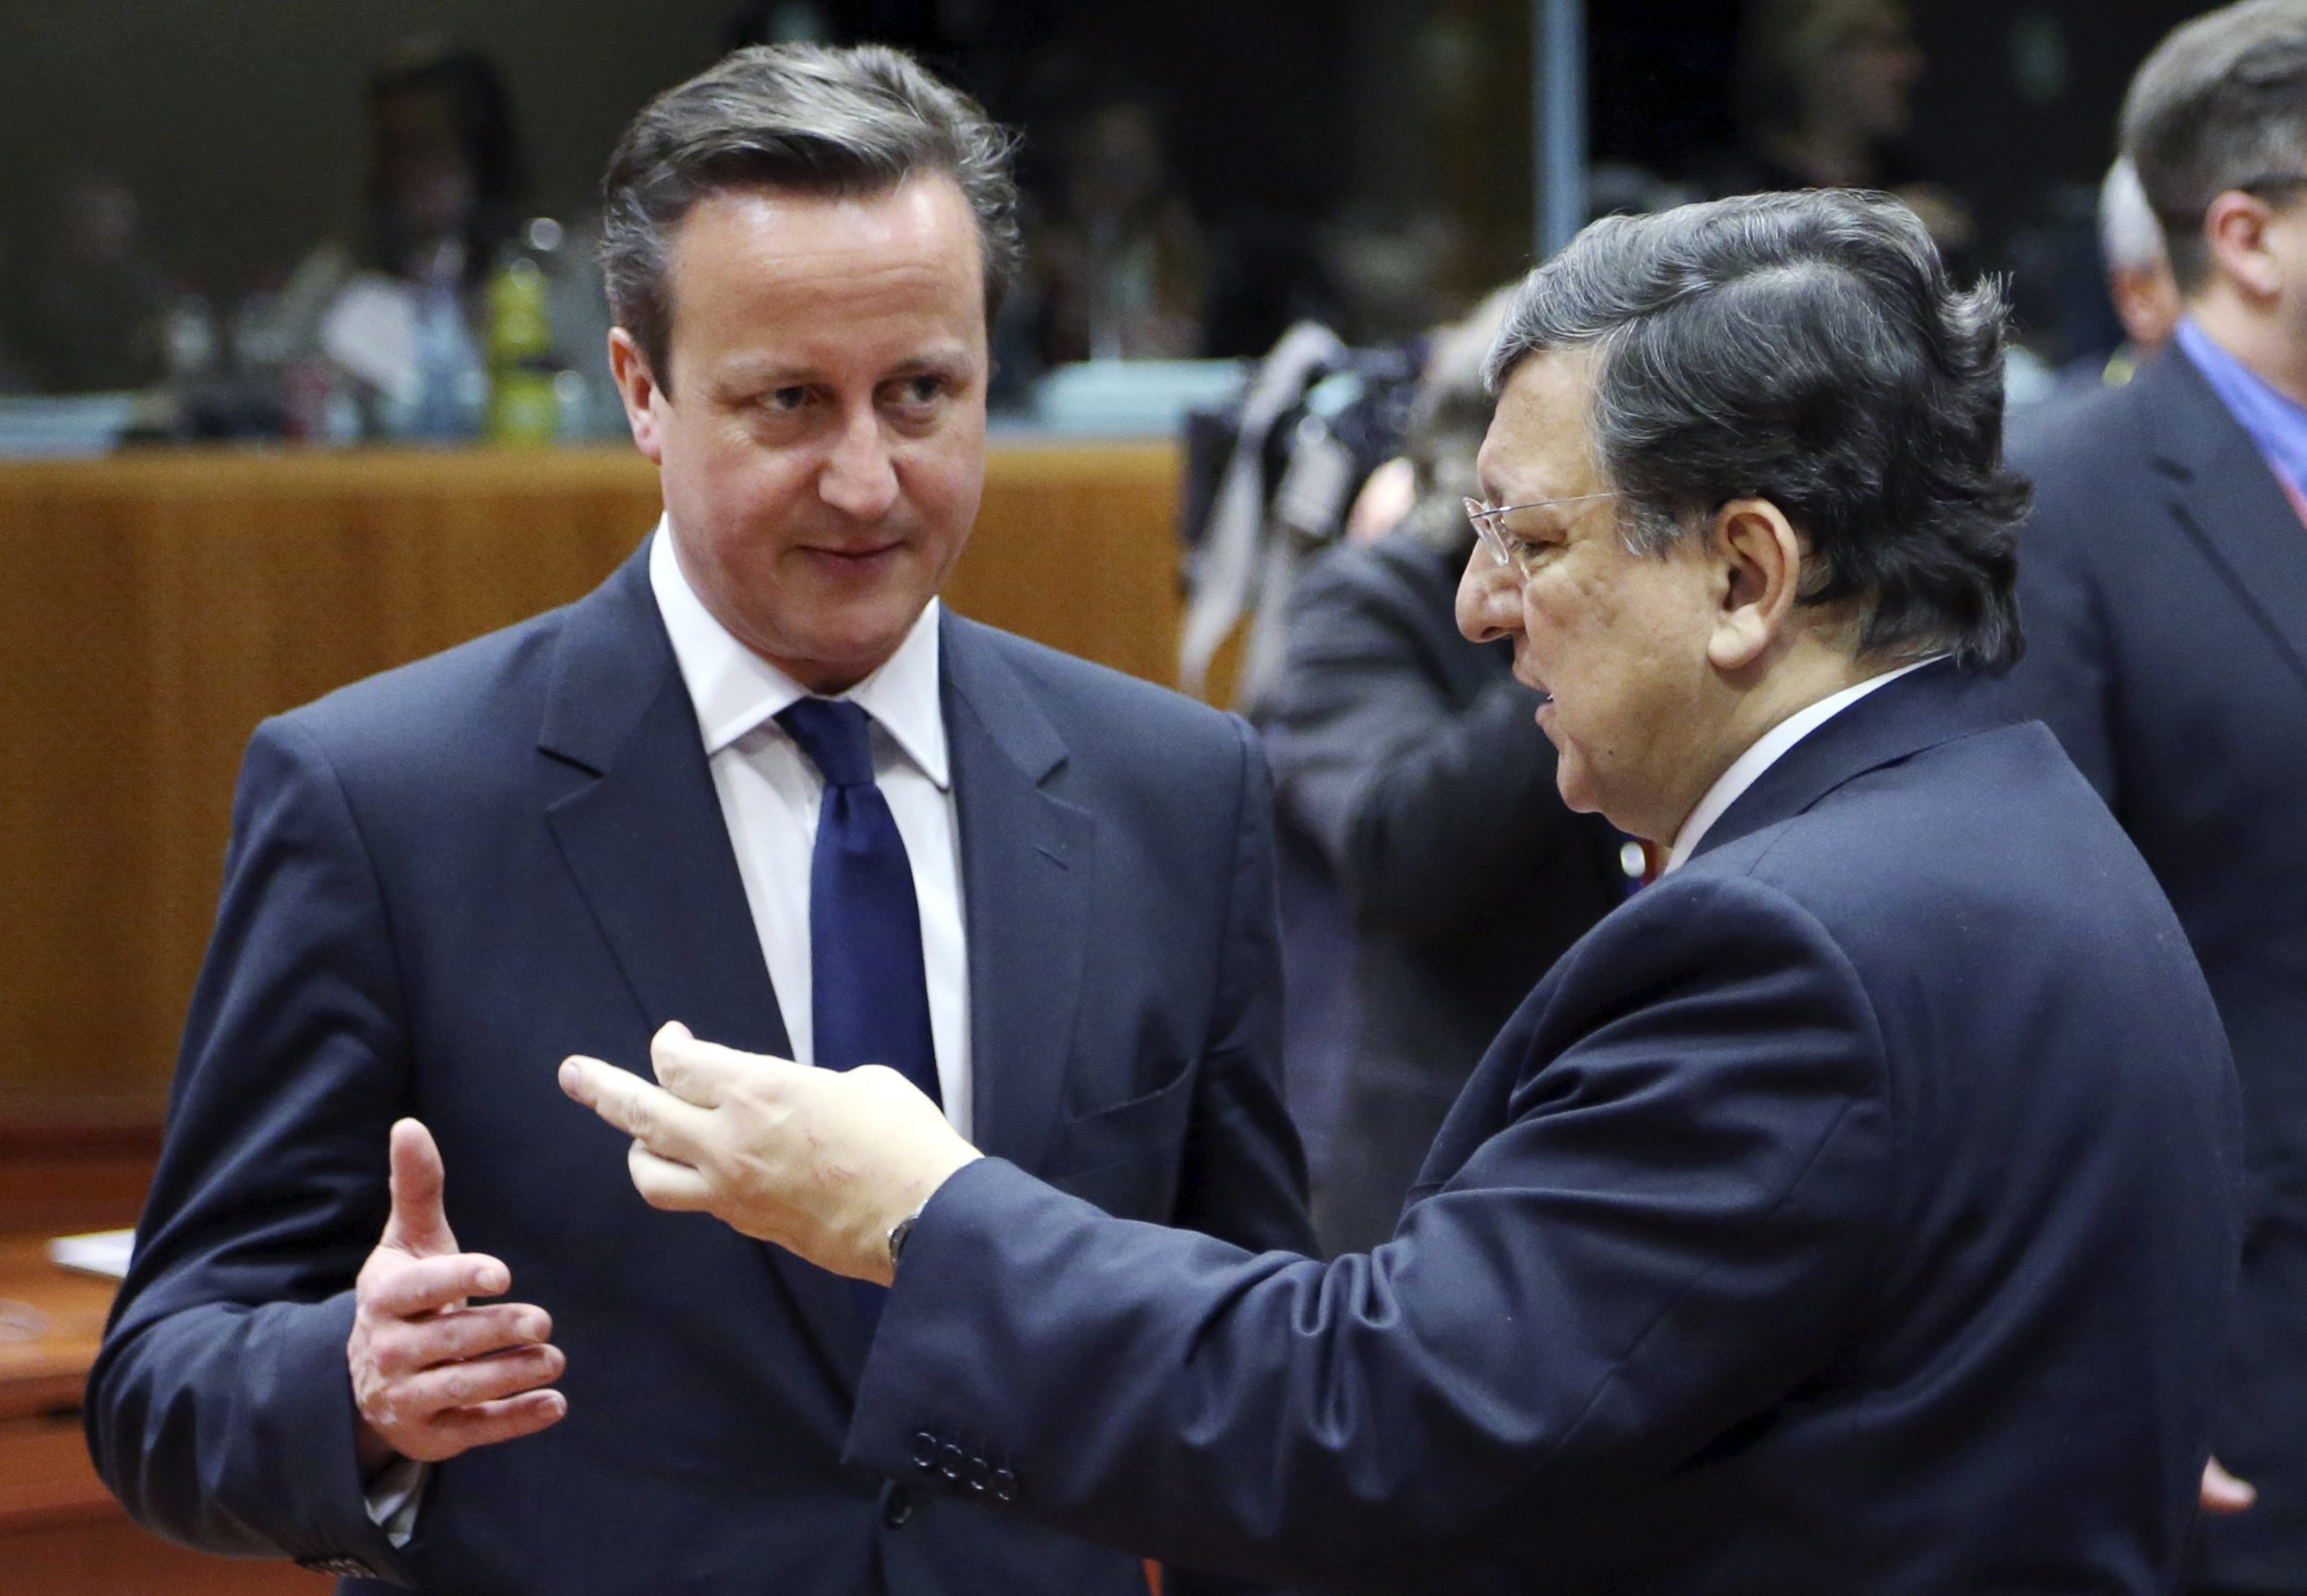 Barroso speaking to Cameron